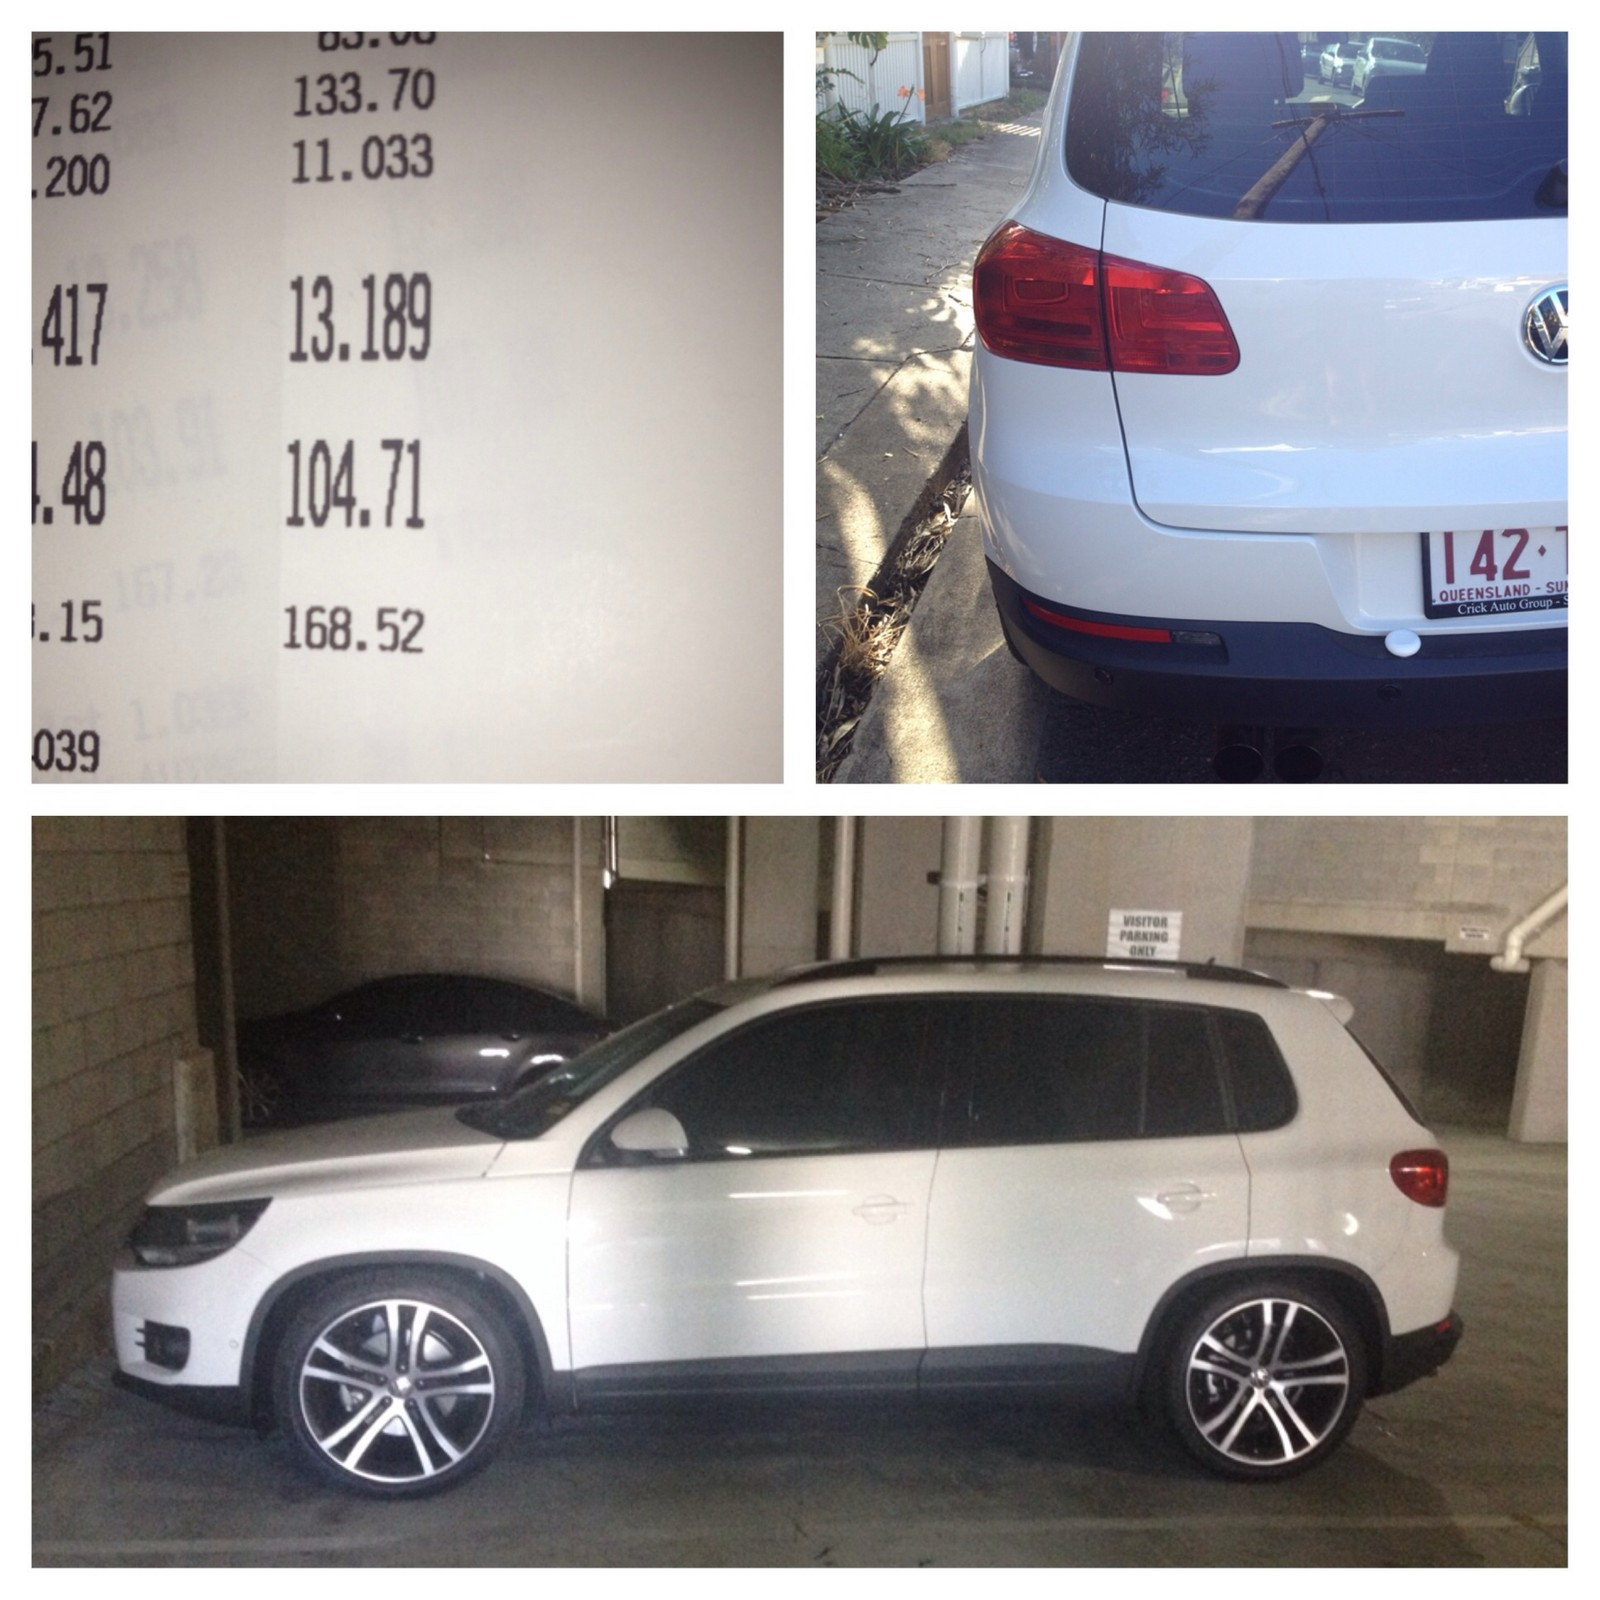 2013 white volkswagen tiguan 132 pacific pictures mods upgrades wallpaper dragtimes com